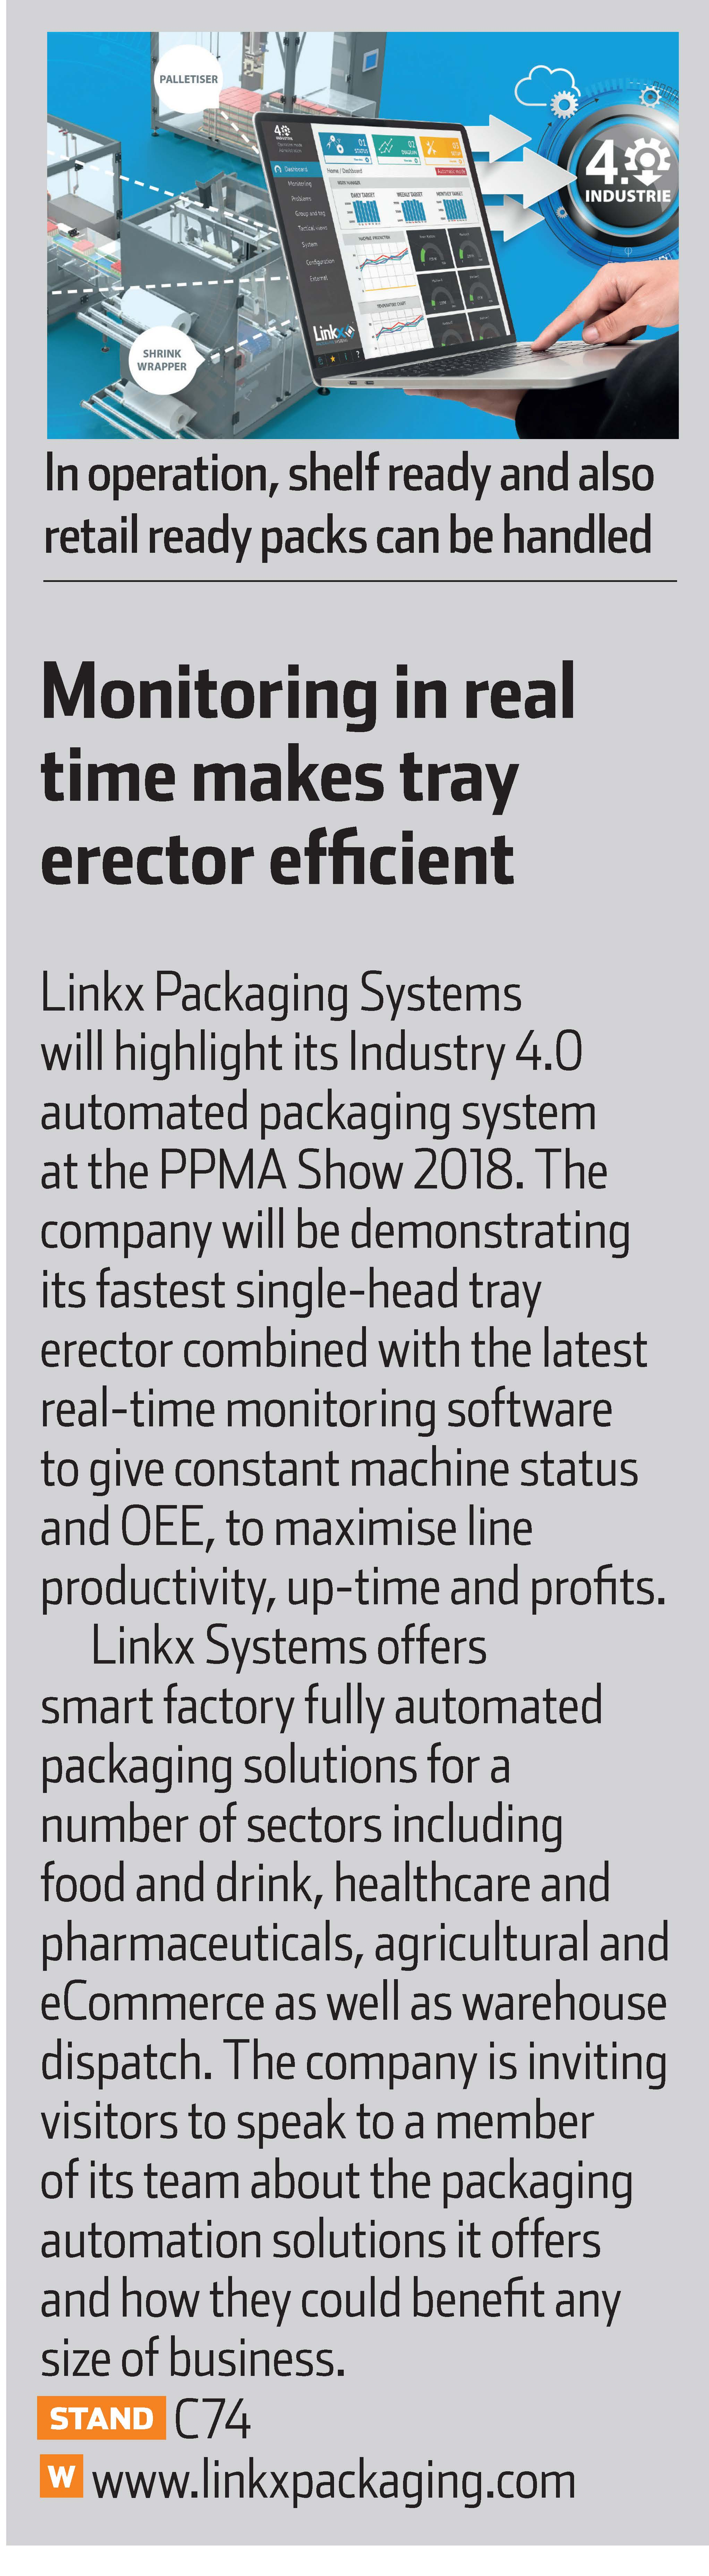 PPMA Machinery Update September 2018 Press Clipping